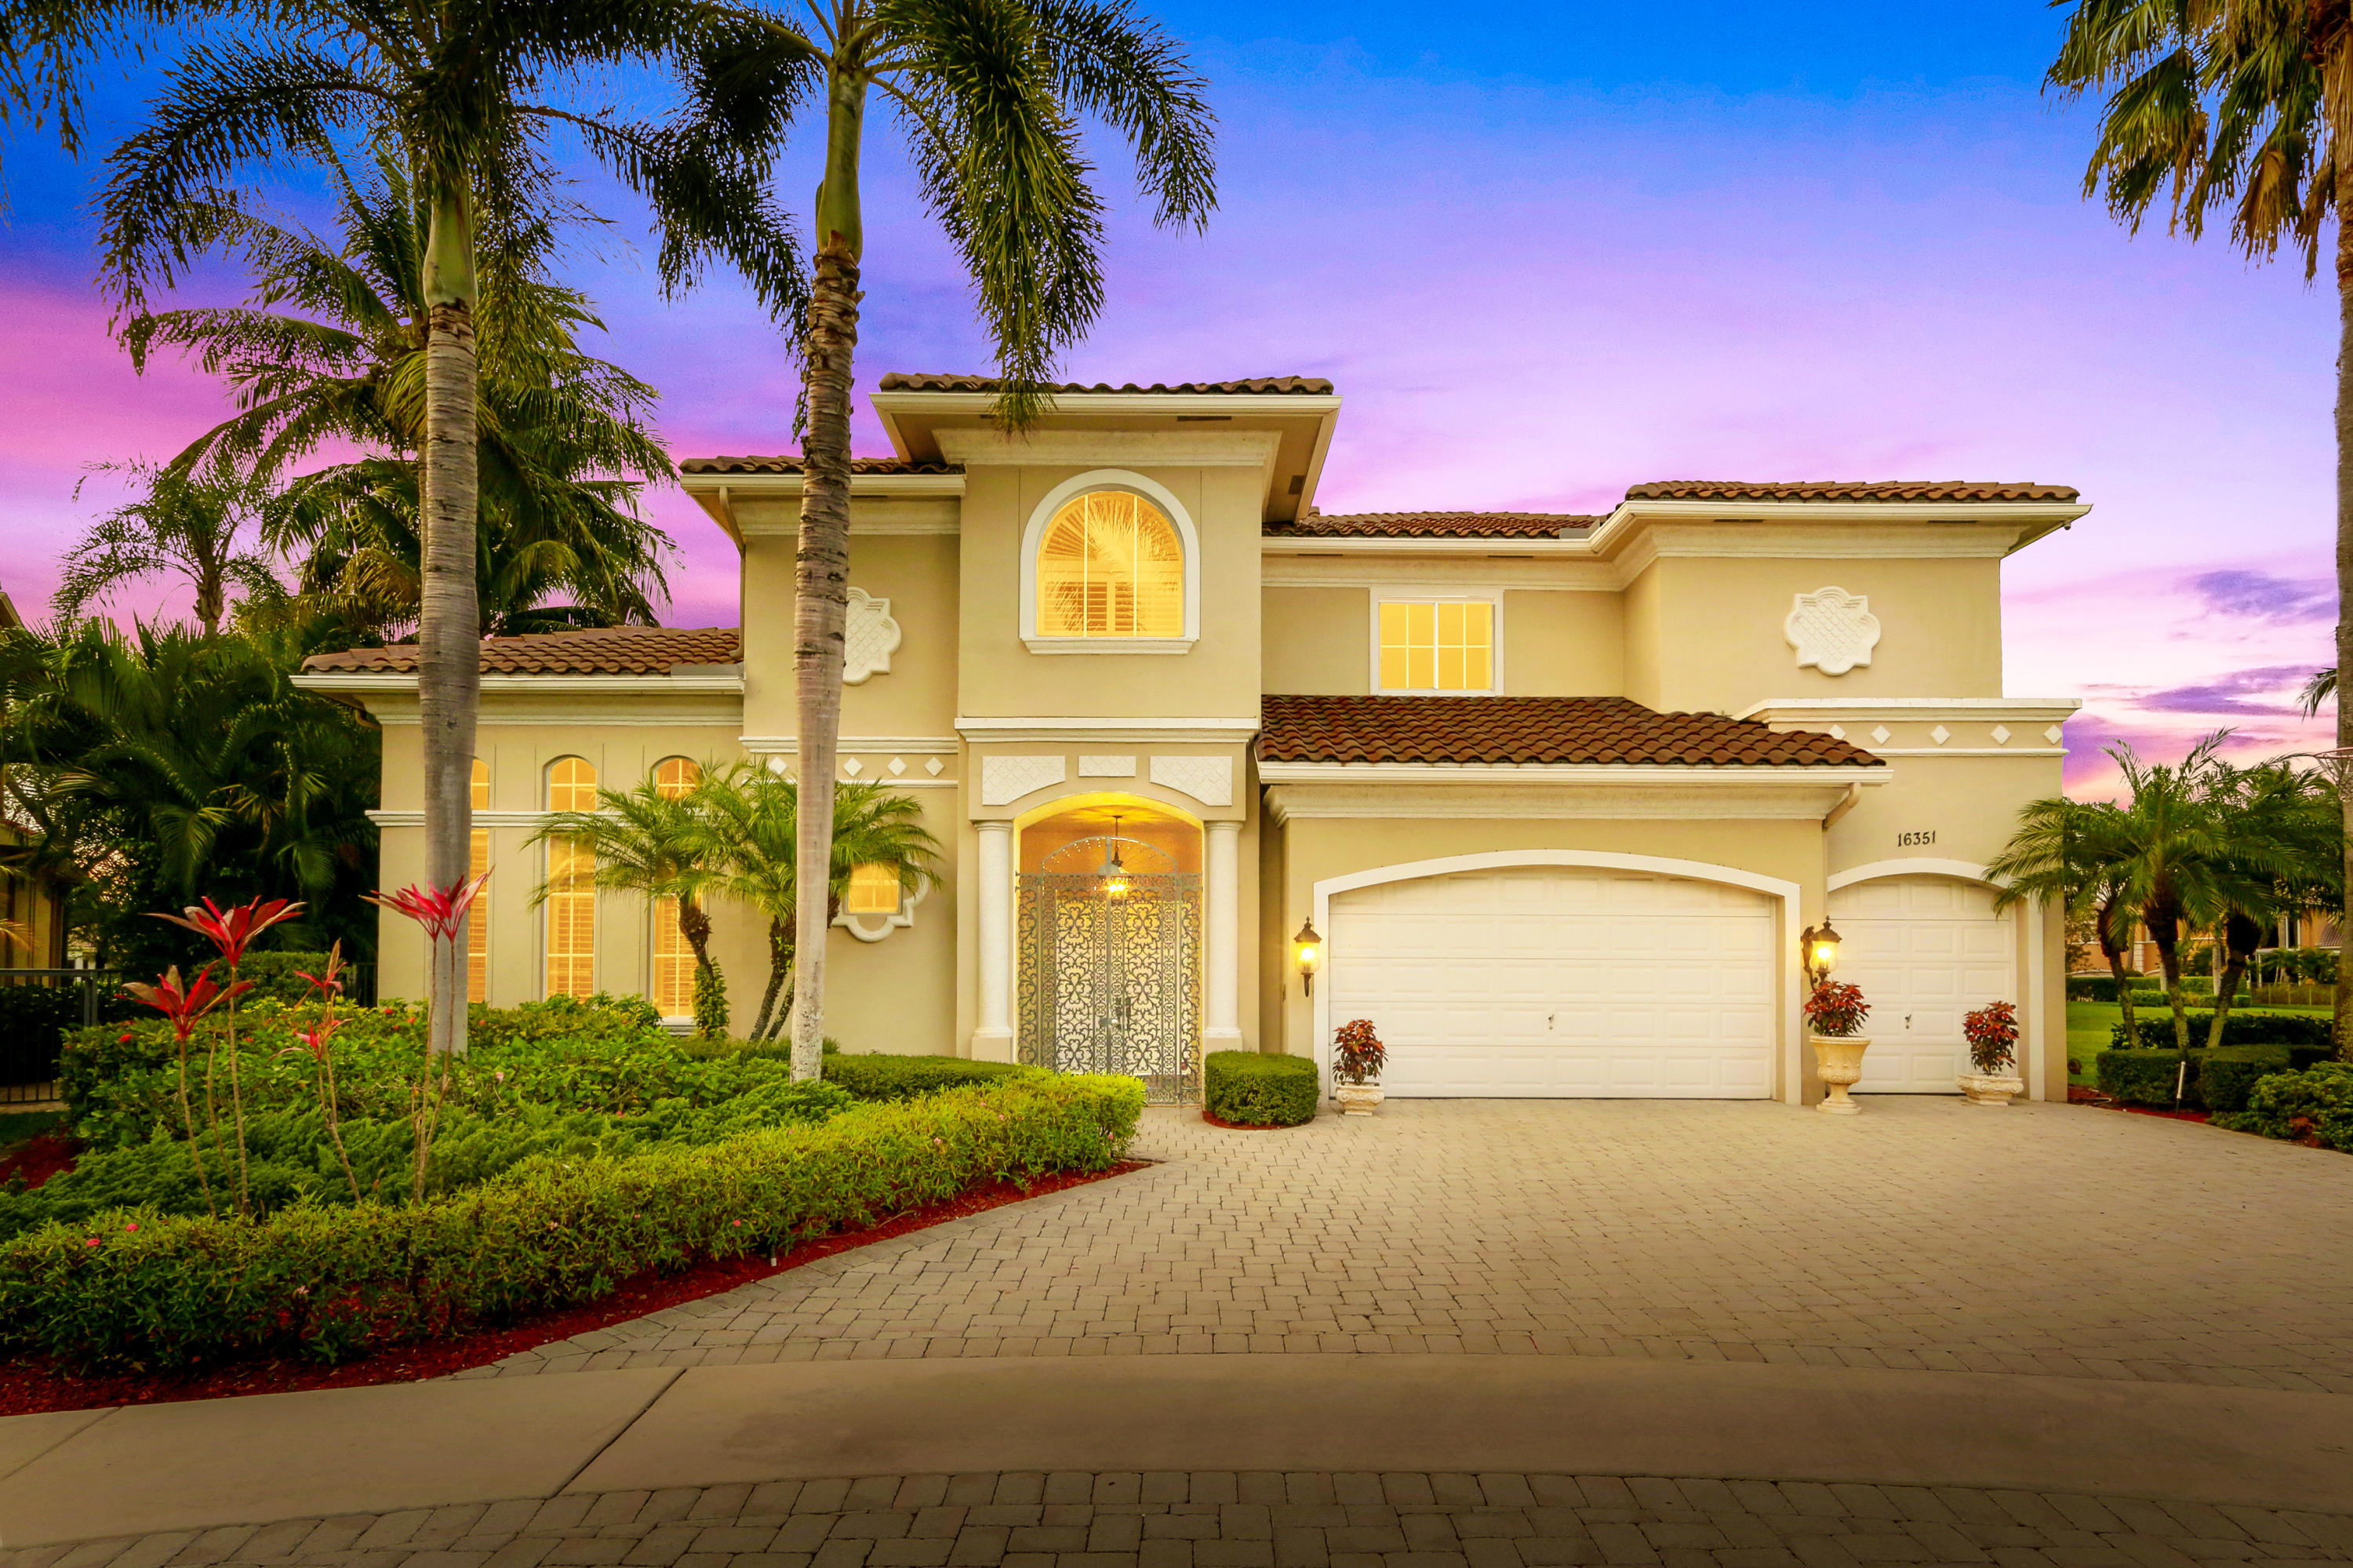 16351 Via Fontana  Delray Beach, FL 33484